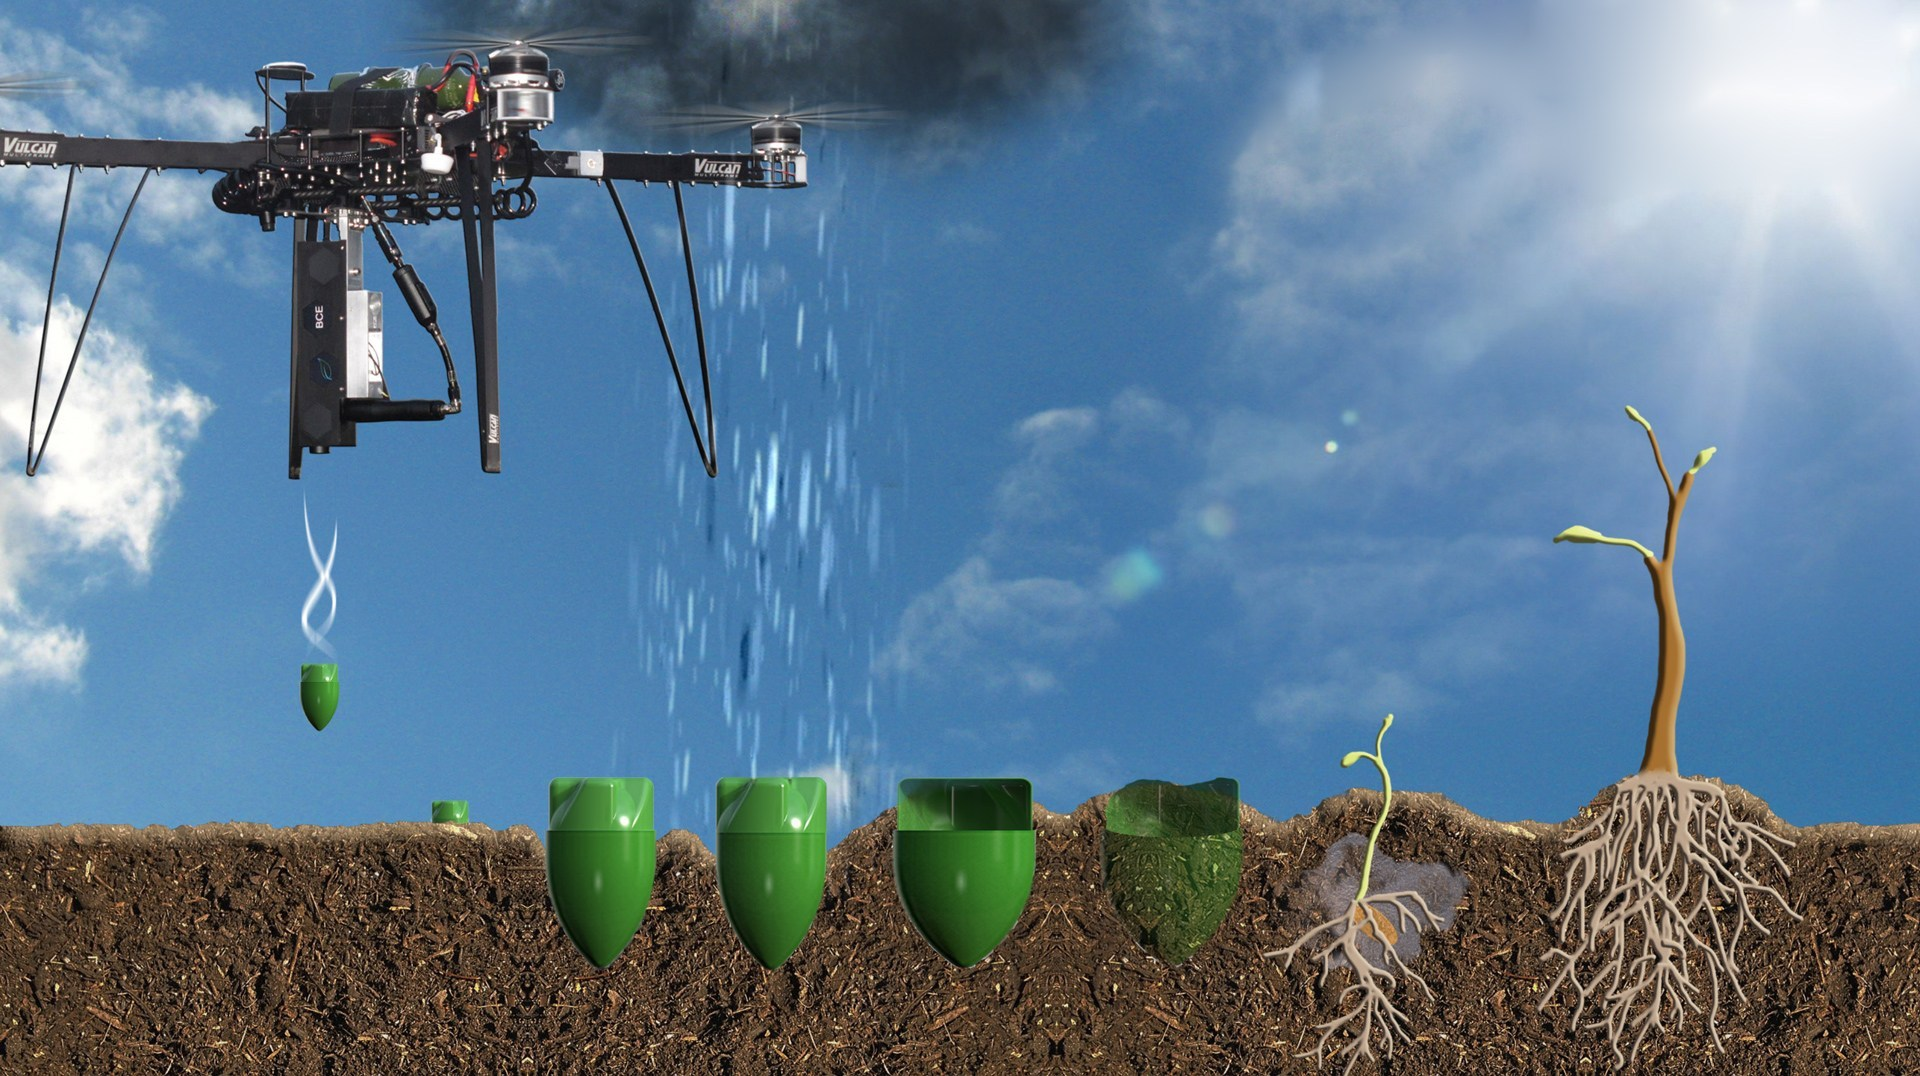 BioCarbon Engineering's drones spray tree seeds to fight deforestation.jpg